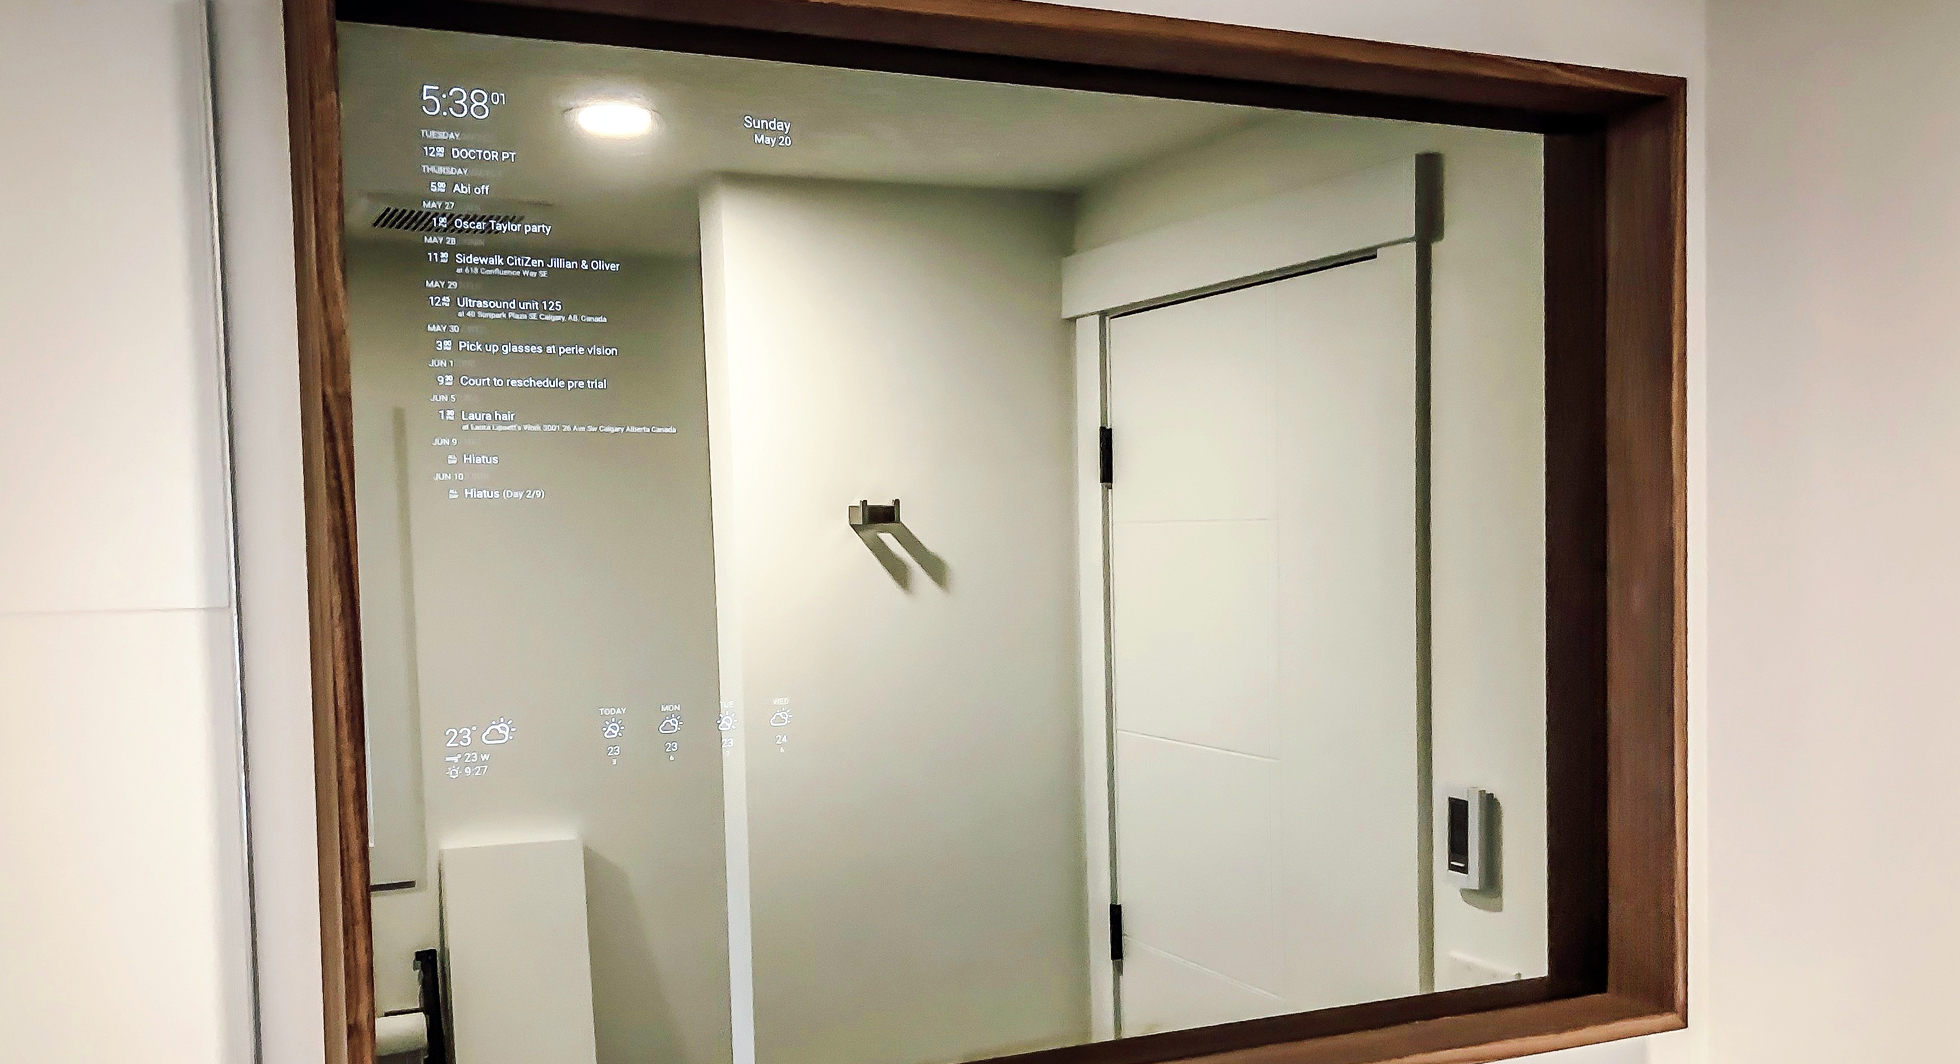 Smart mirror in a home bathroom